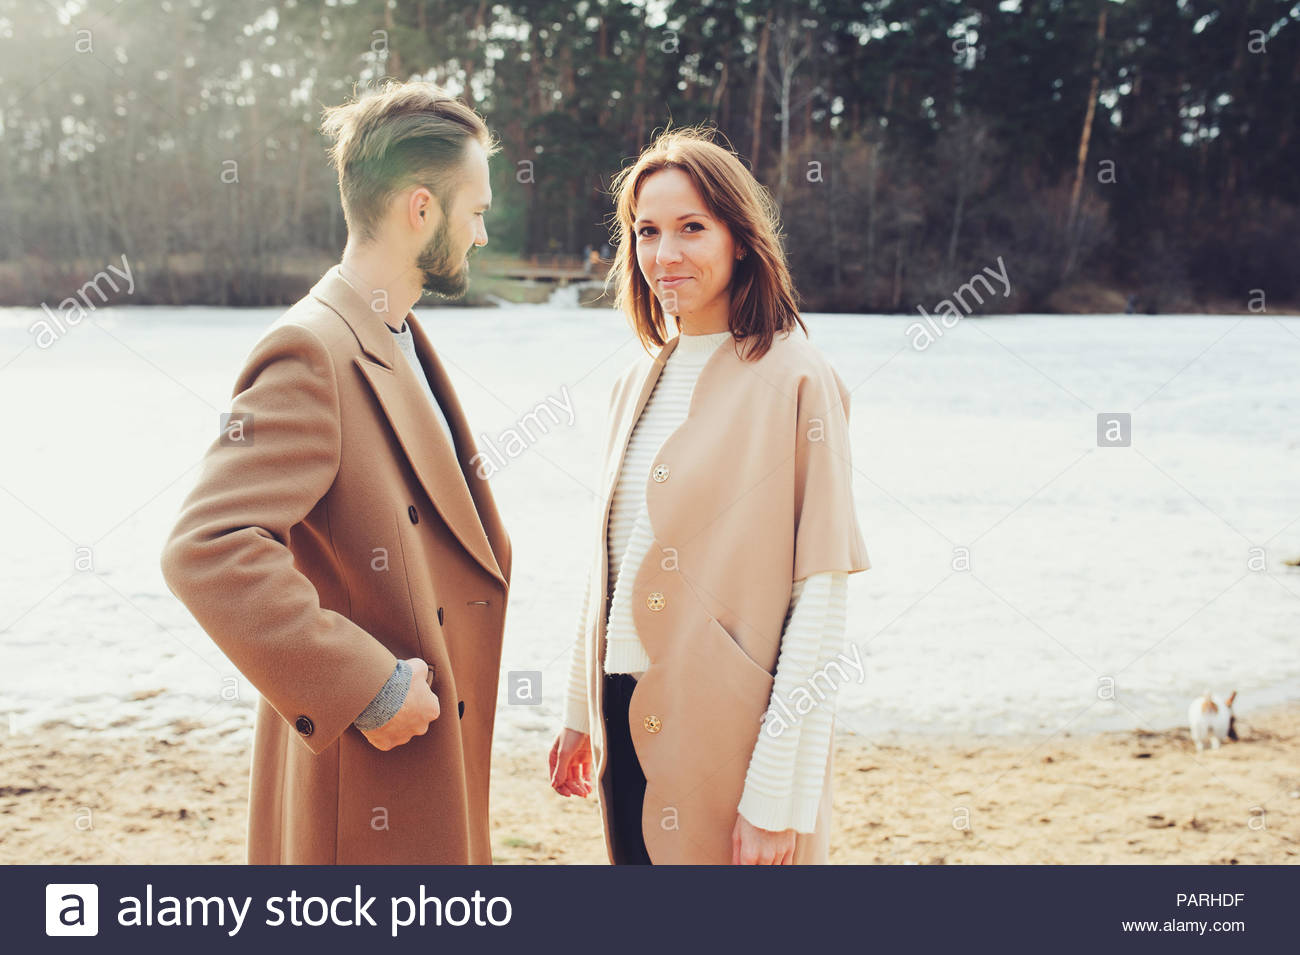 Three quarter length of a young couple standing at the beach - Stock Image